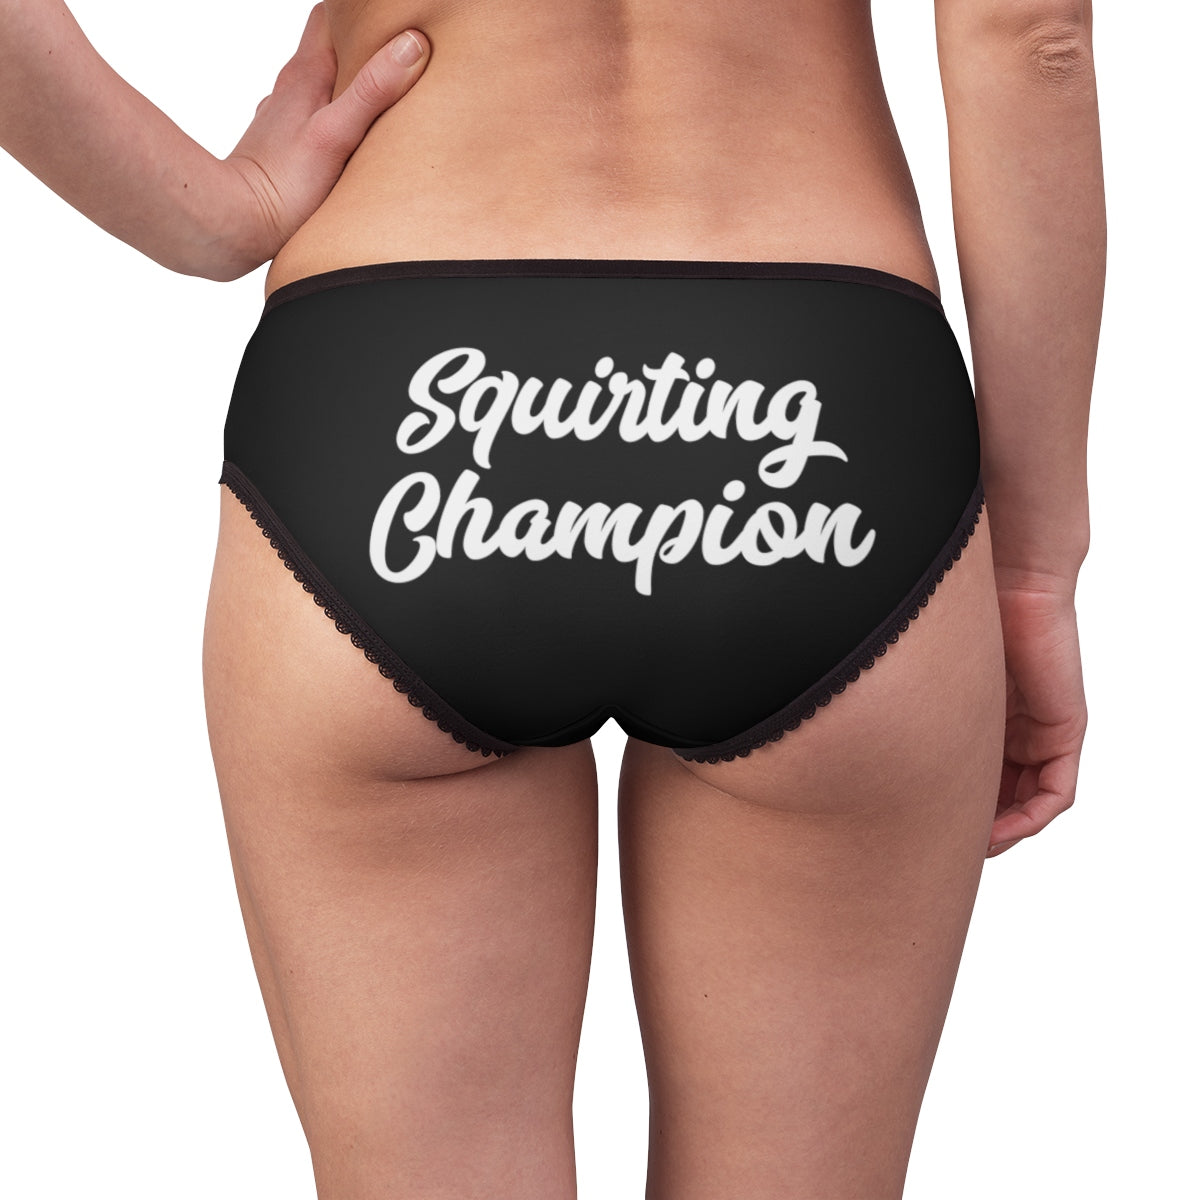 Squirting Champion Fancy Script Watersports Women's Briefs